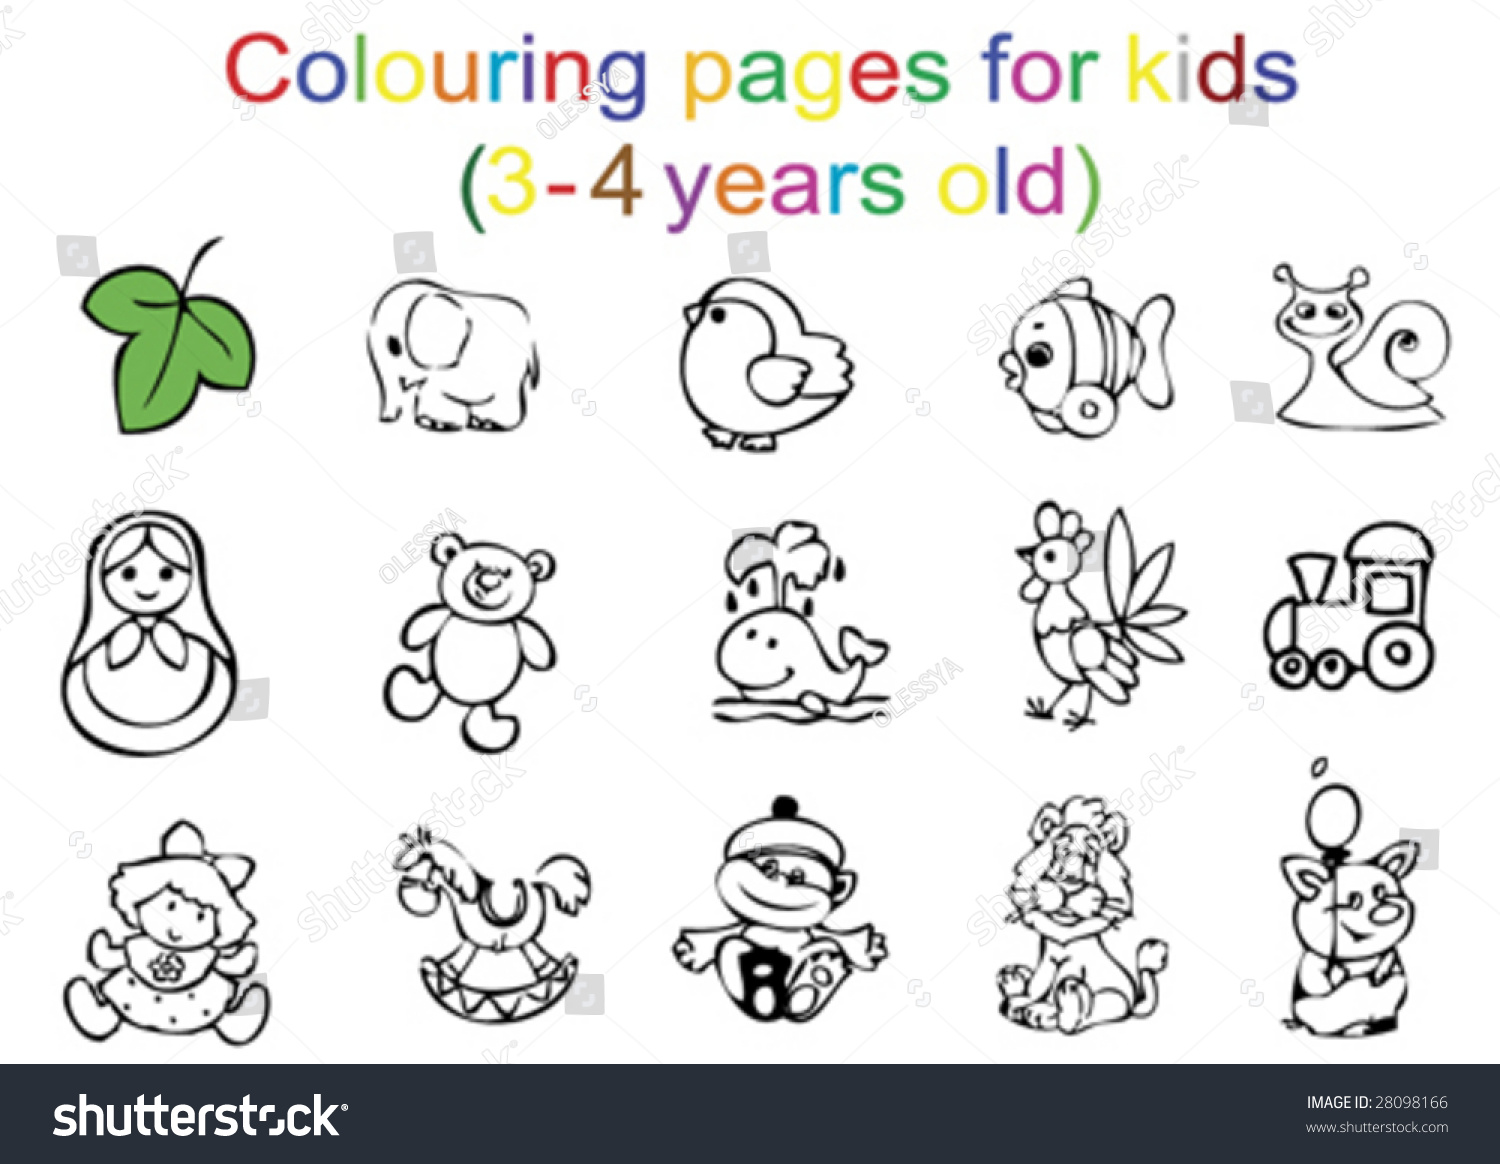 Colouring pages for kids 3 4 years old stock vector for Coloring pages for 3 4 year olds